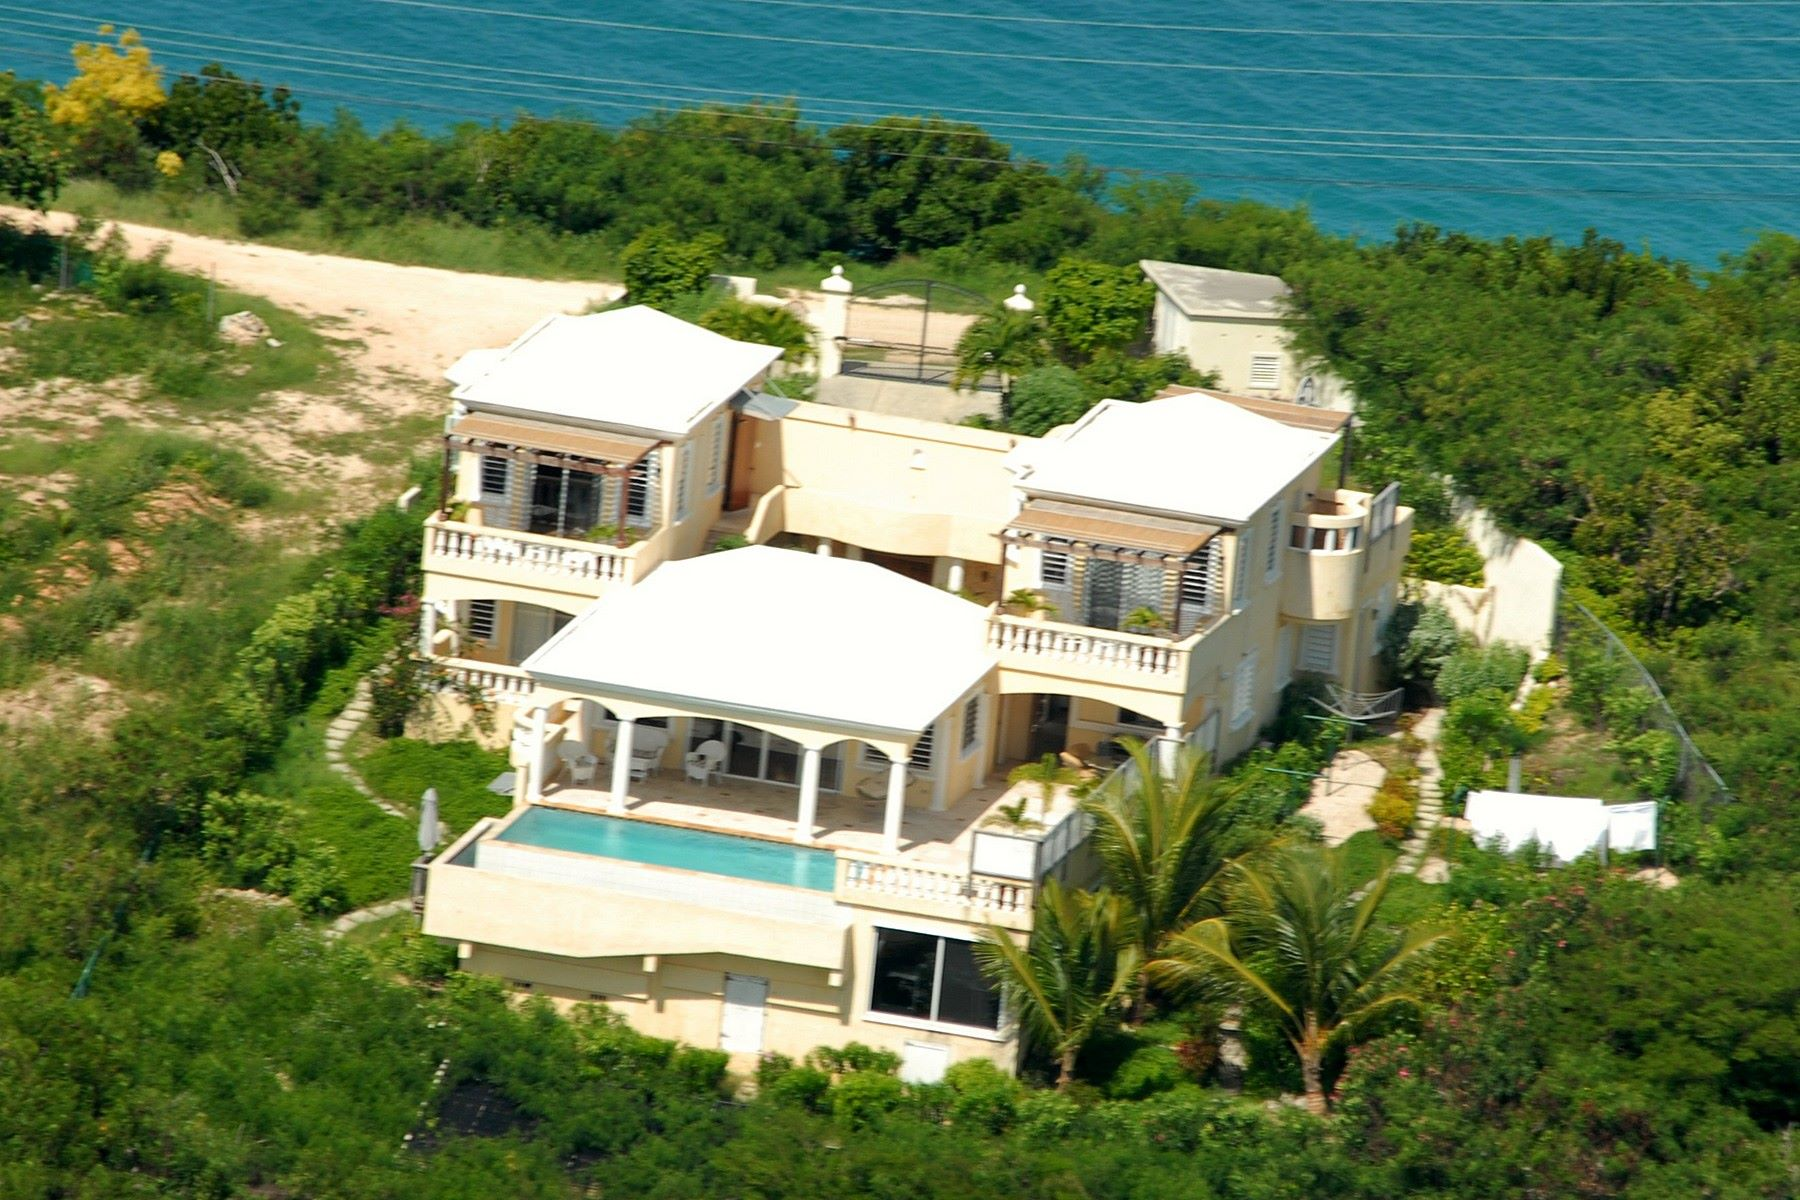 Maison unifamiliale pour l Vente à Edward's Edifice North Hill Other Anguilla, AI 2640 Anguilla